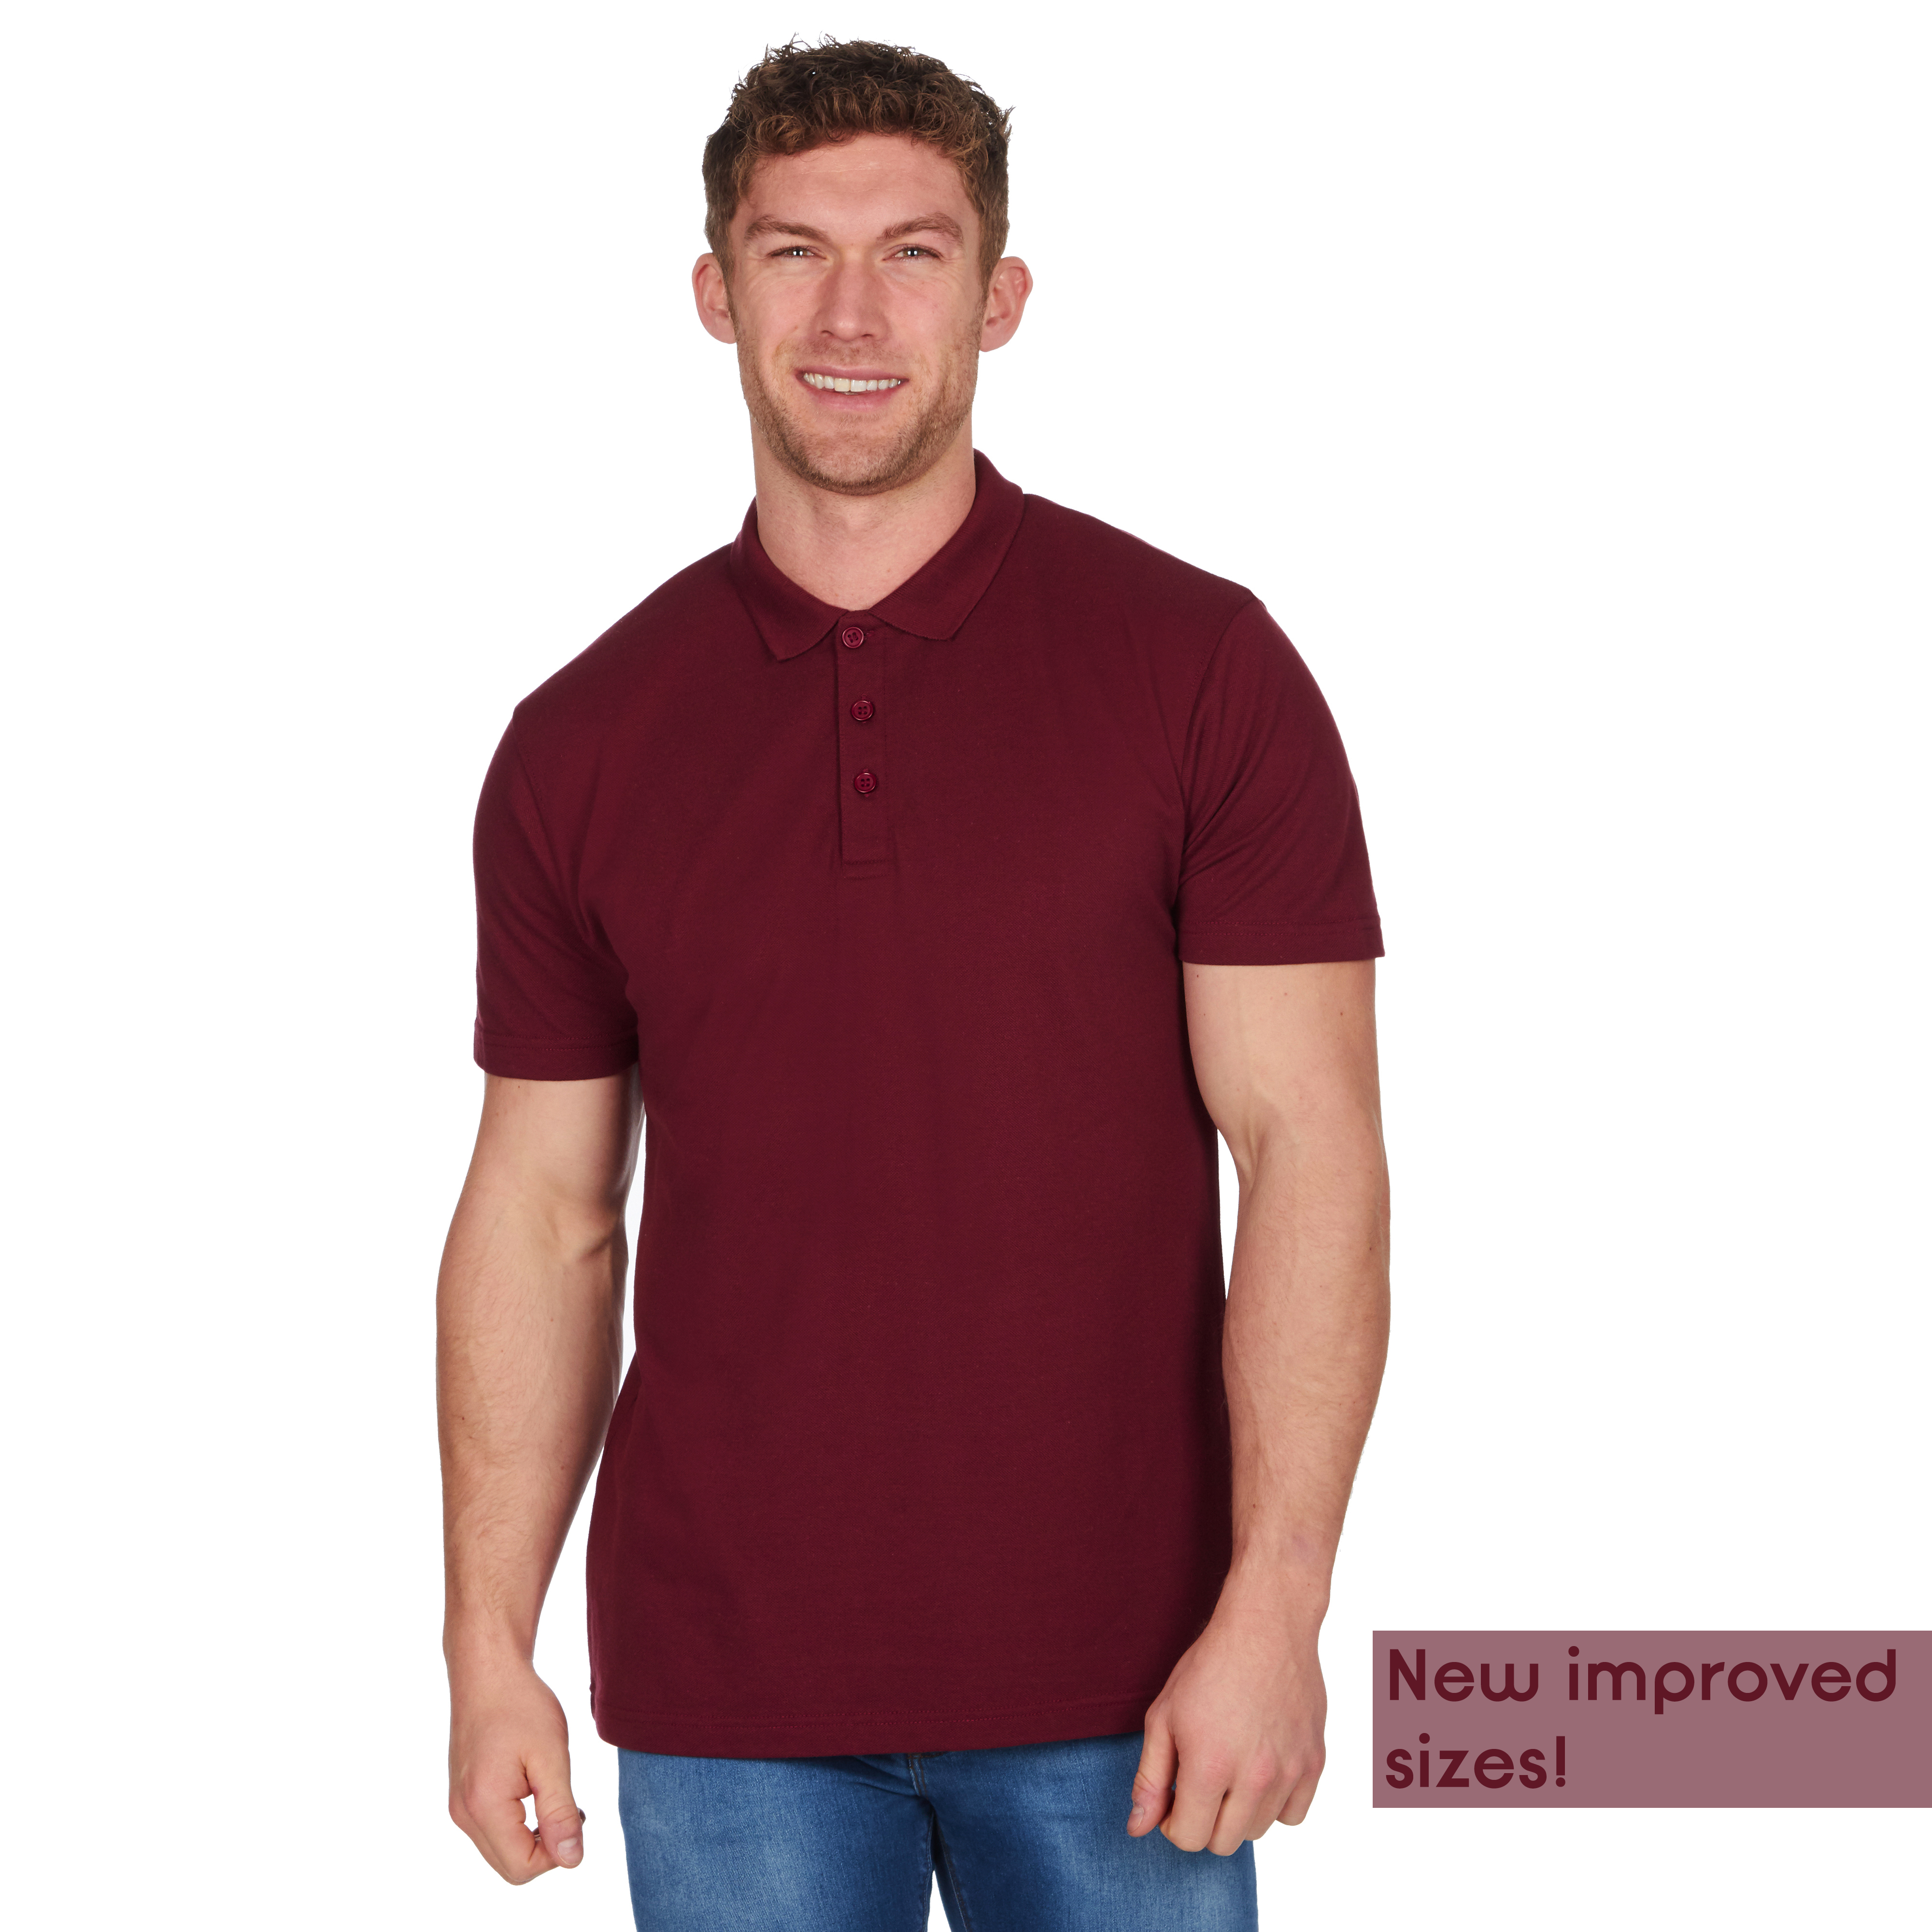 Mens-Classic-Polo-Top-Plus-Size-T-Shirt-Plain-Shirt-Big-And-Tall-Short-Sleeve thumbnail 39